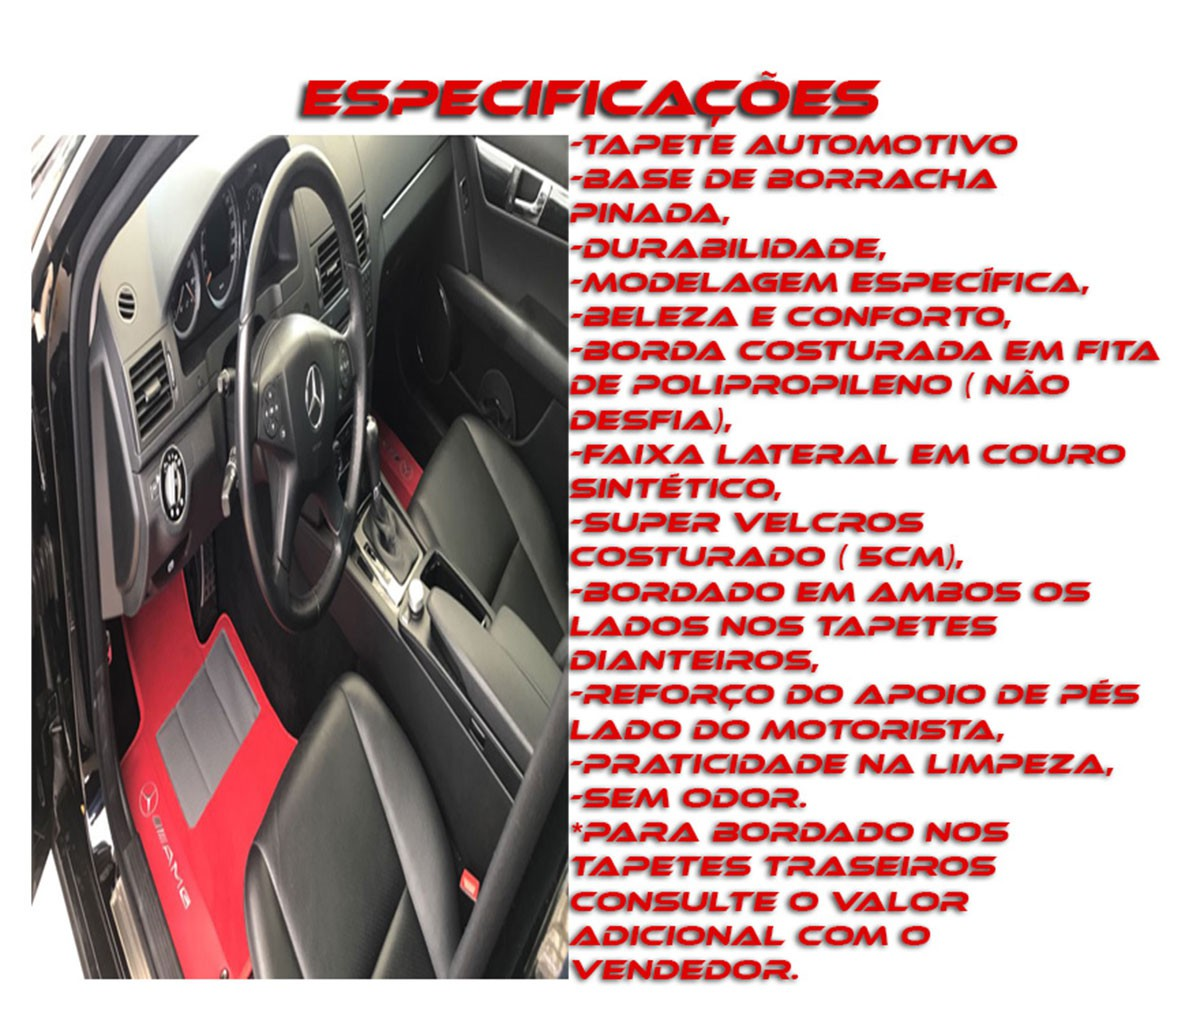 Tapete Chevrolet Opala Marrom Carpete Luxo Base Pinada